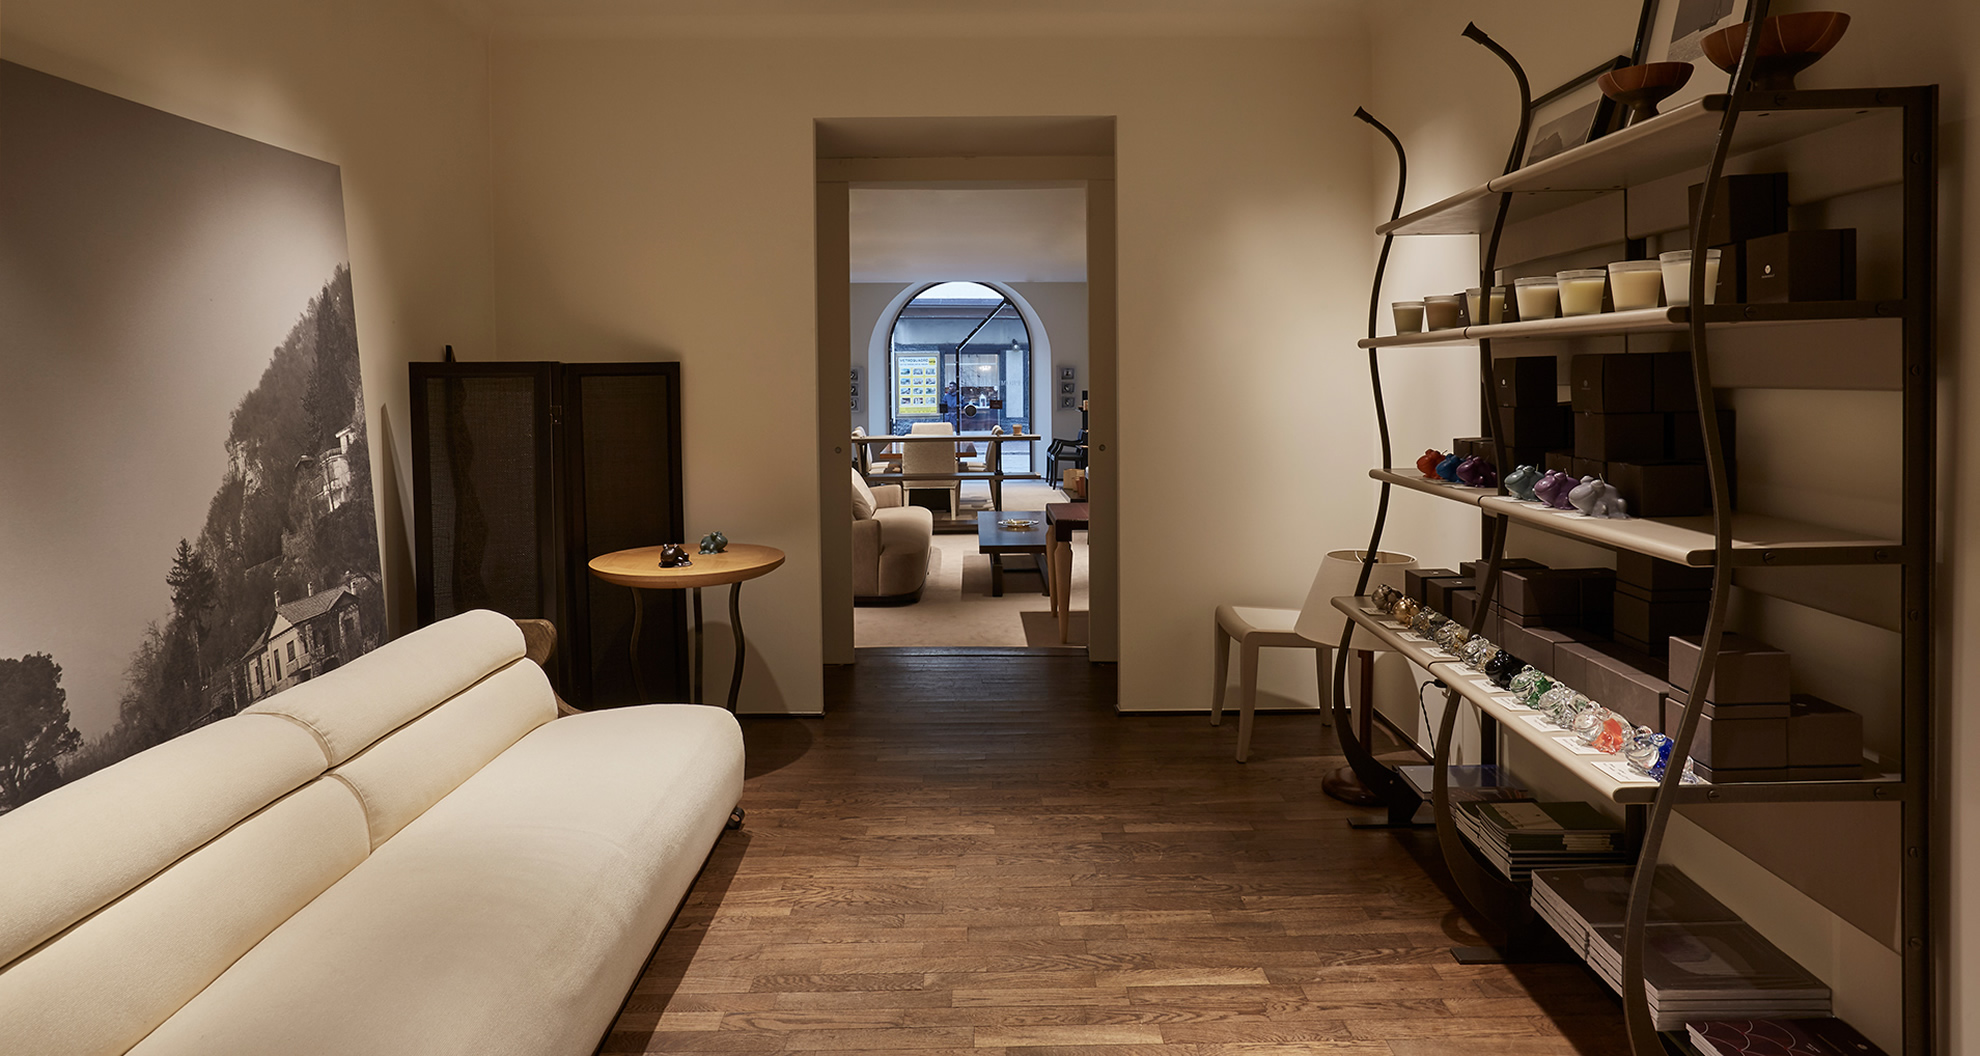 Living room in Promemoria's single-brand showroom in Lecco | Promemoria